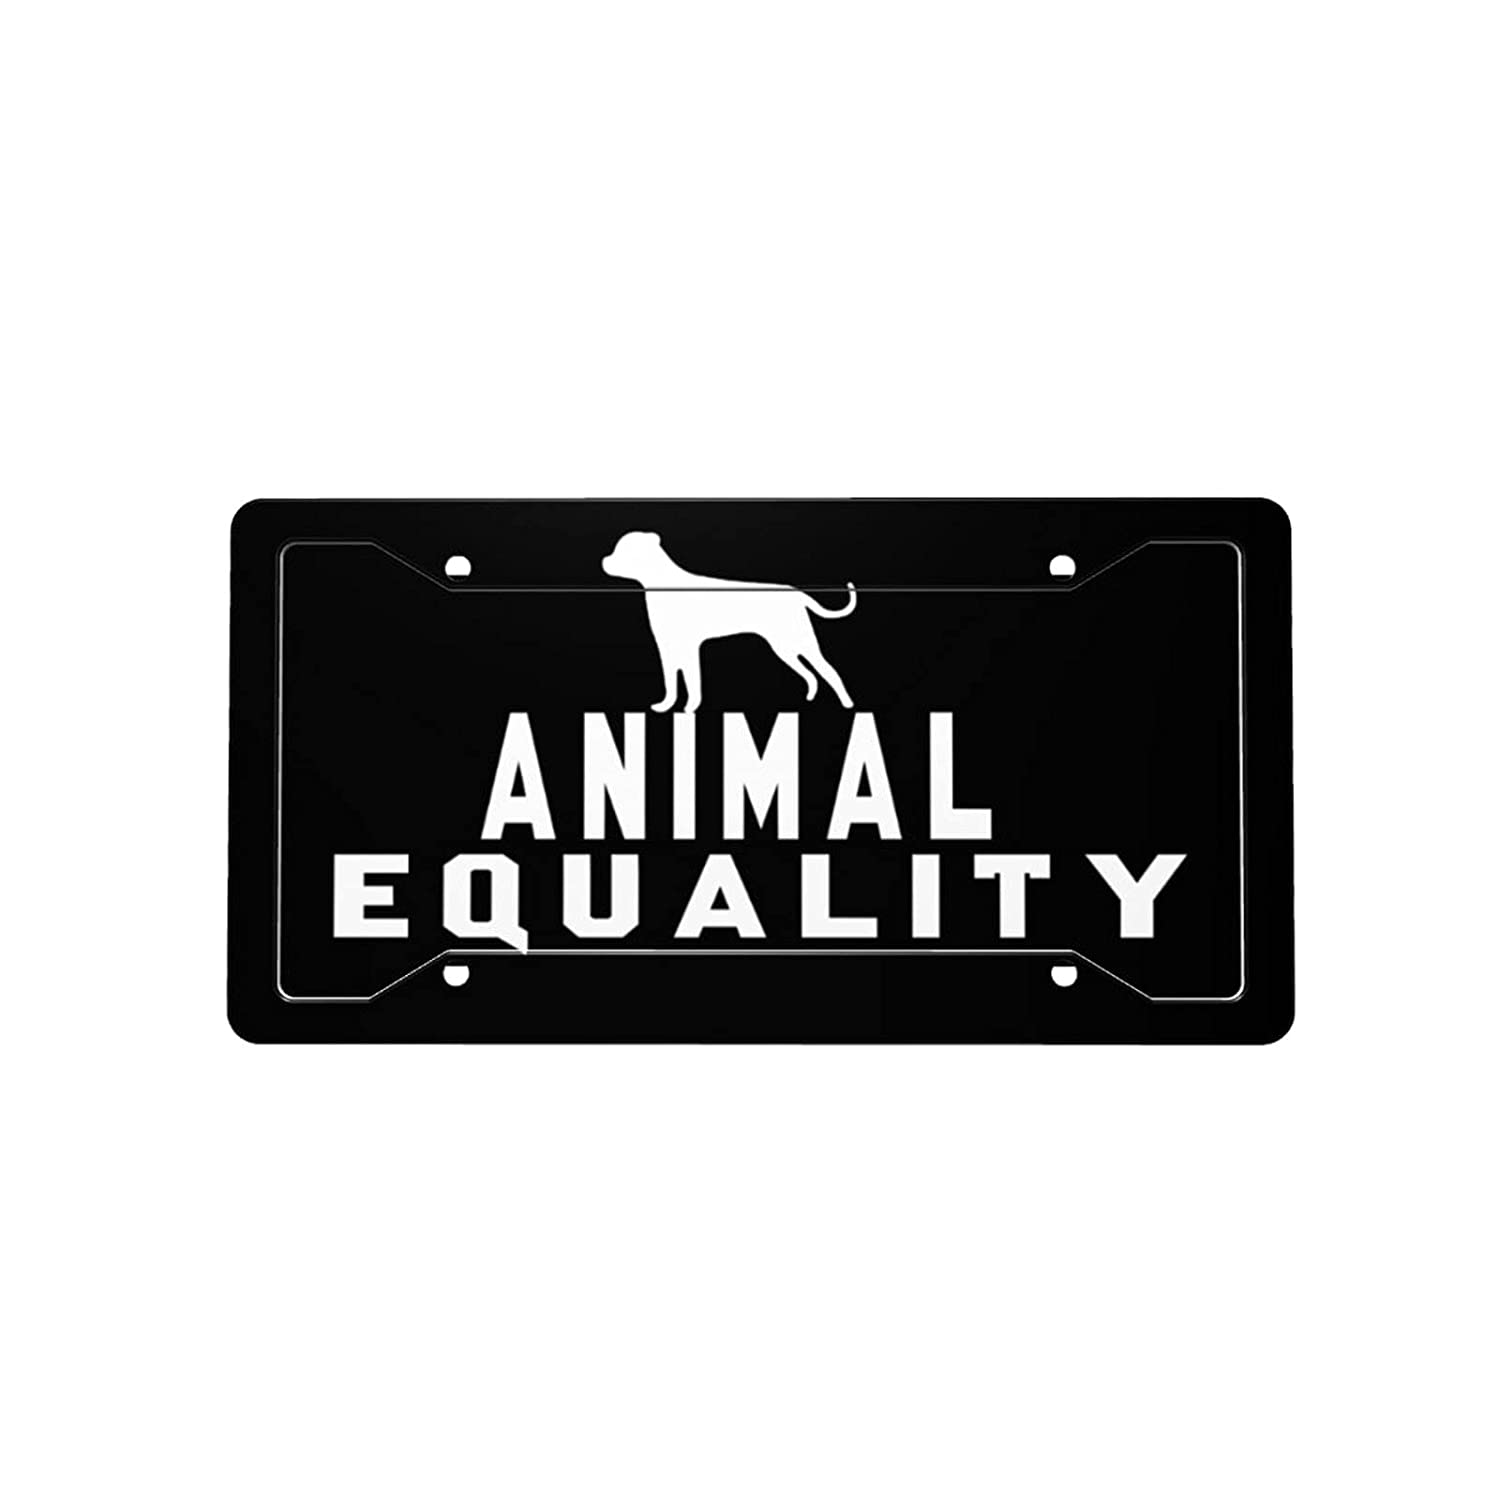 Animal Equality License Plate Decorative Max Nippon regular agency 51% OFF Front Licen Car Vanity